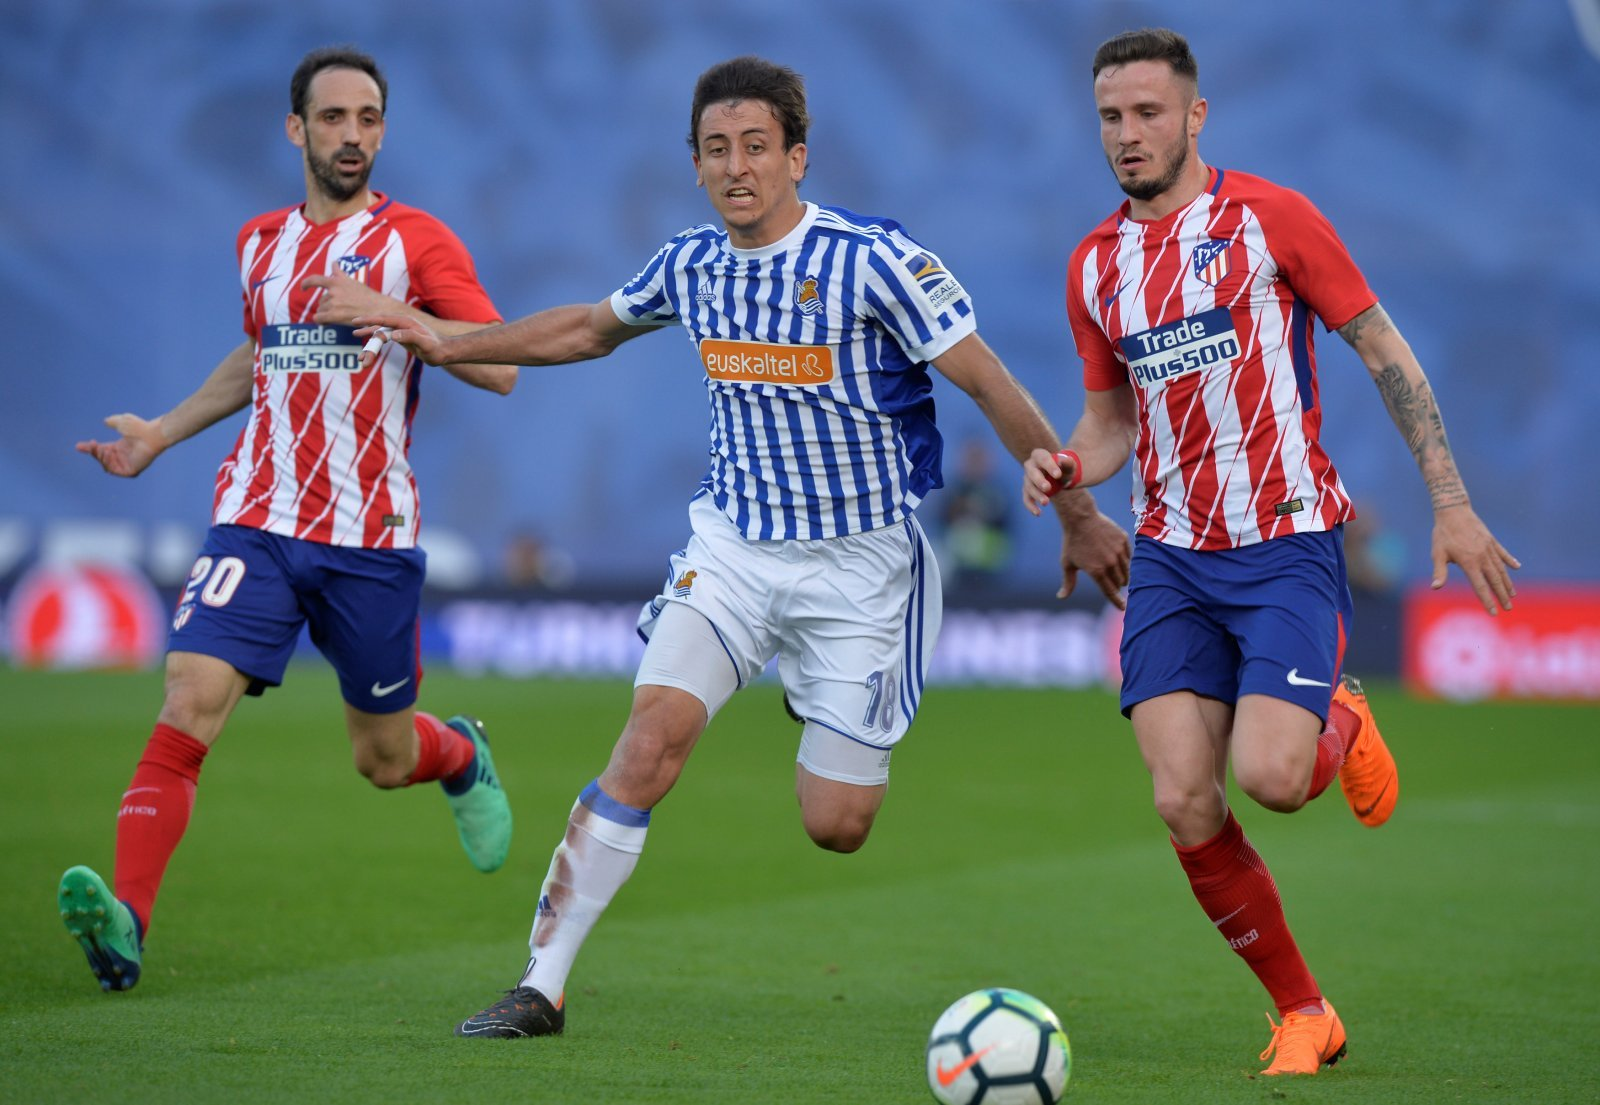 Tottenham have to sign Mikel Oyarzabal to add more pace and quality to the wing